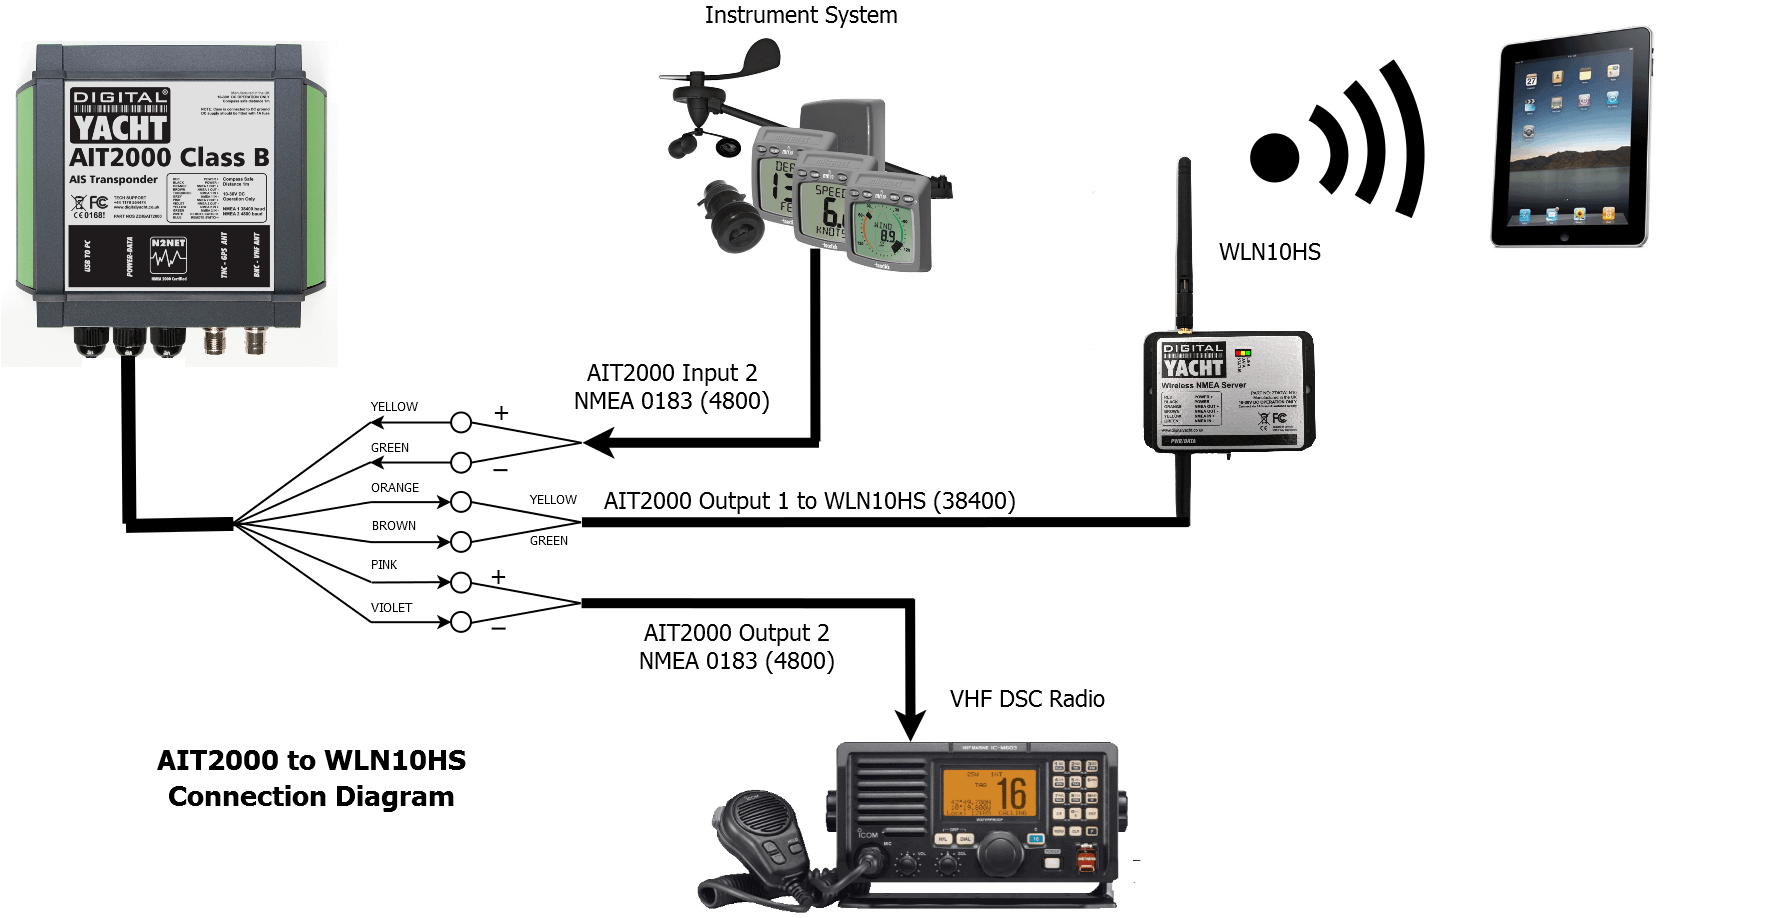 AIT2000 NMEA Connections to WLN10HS